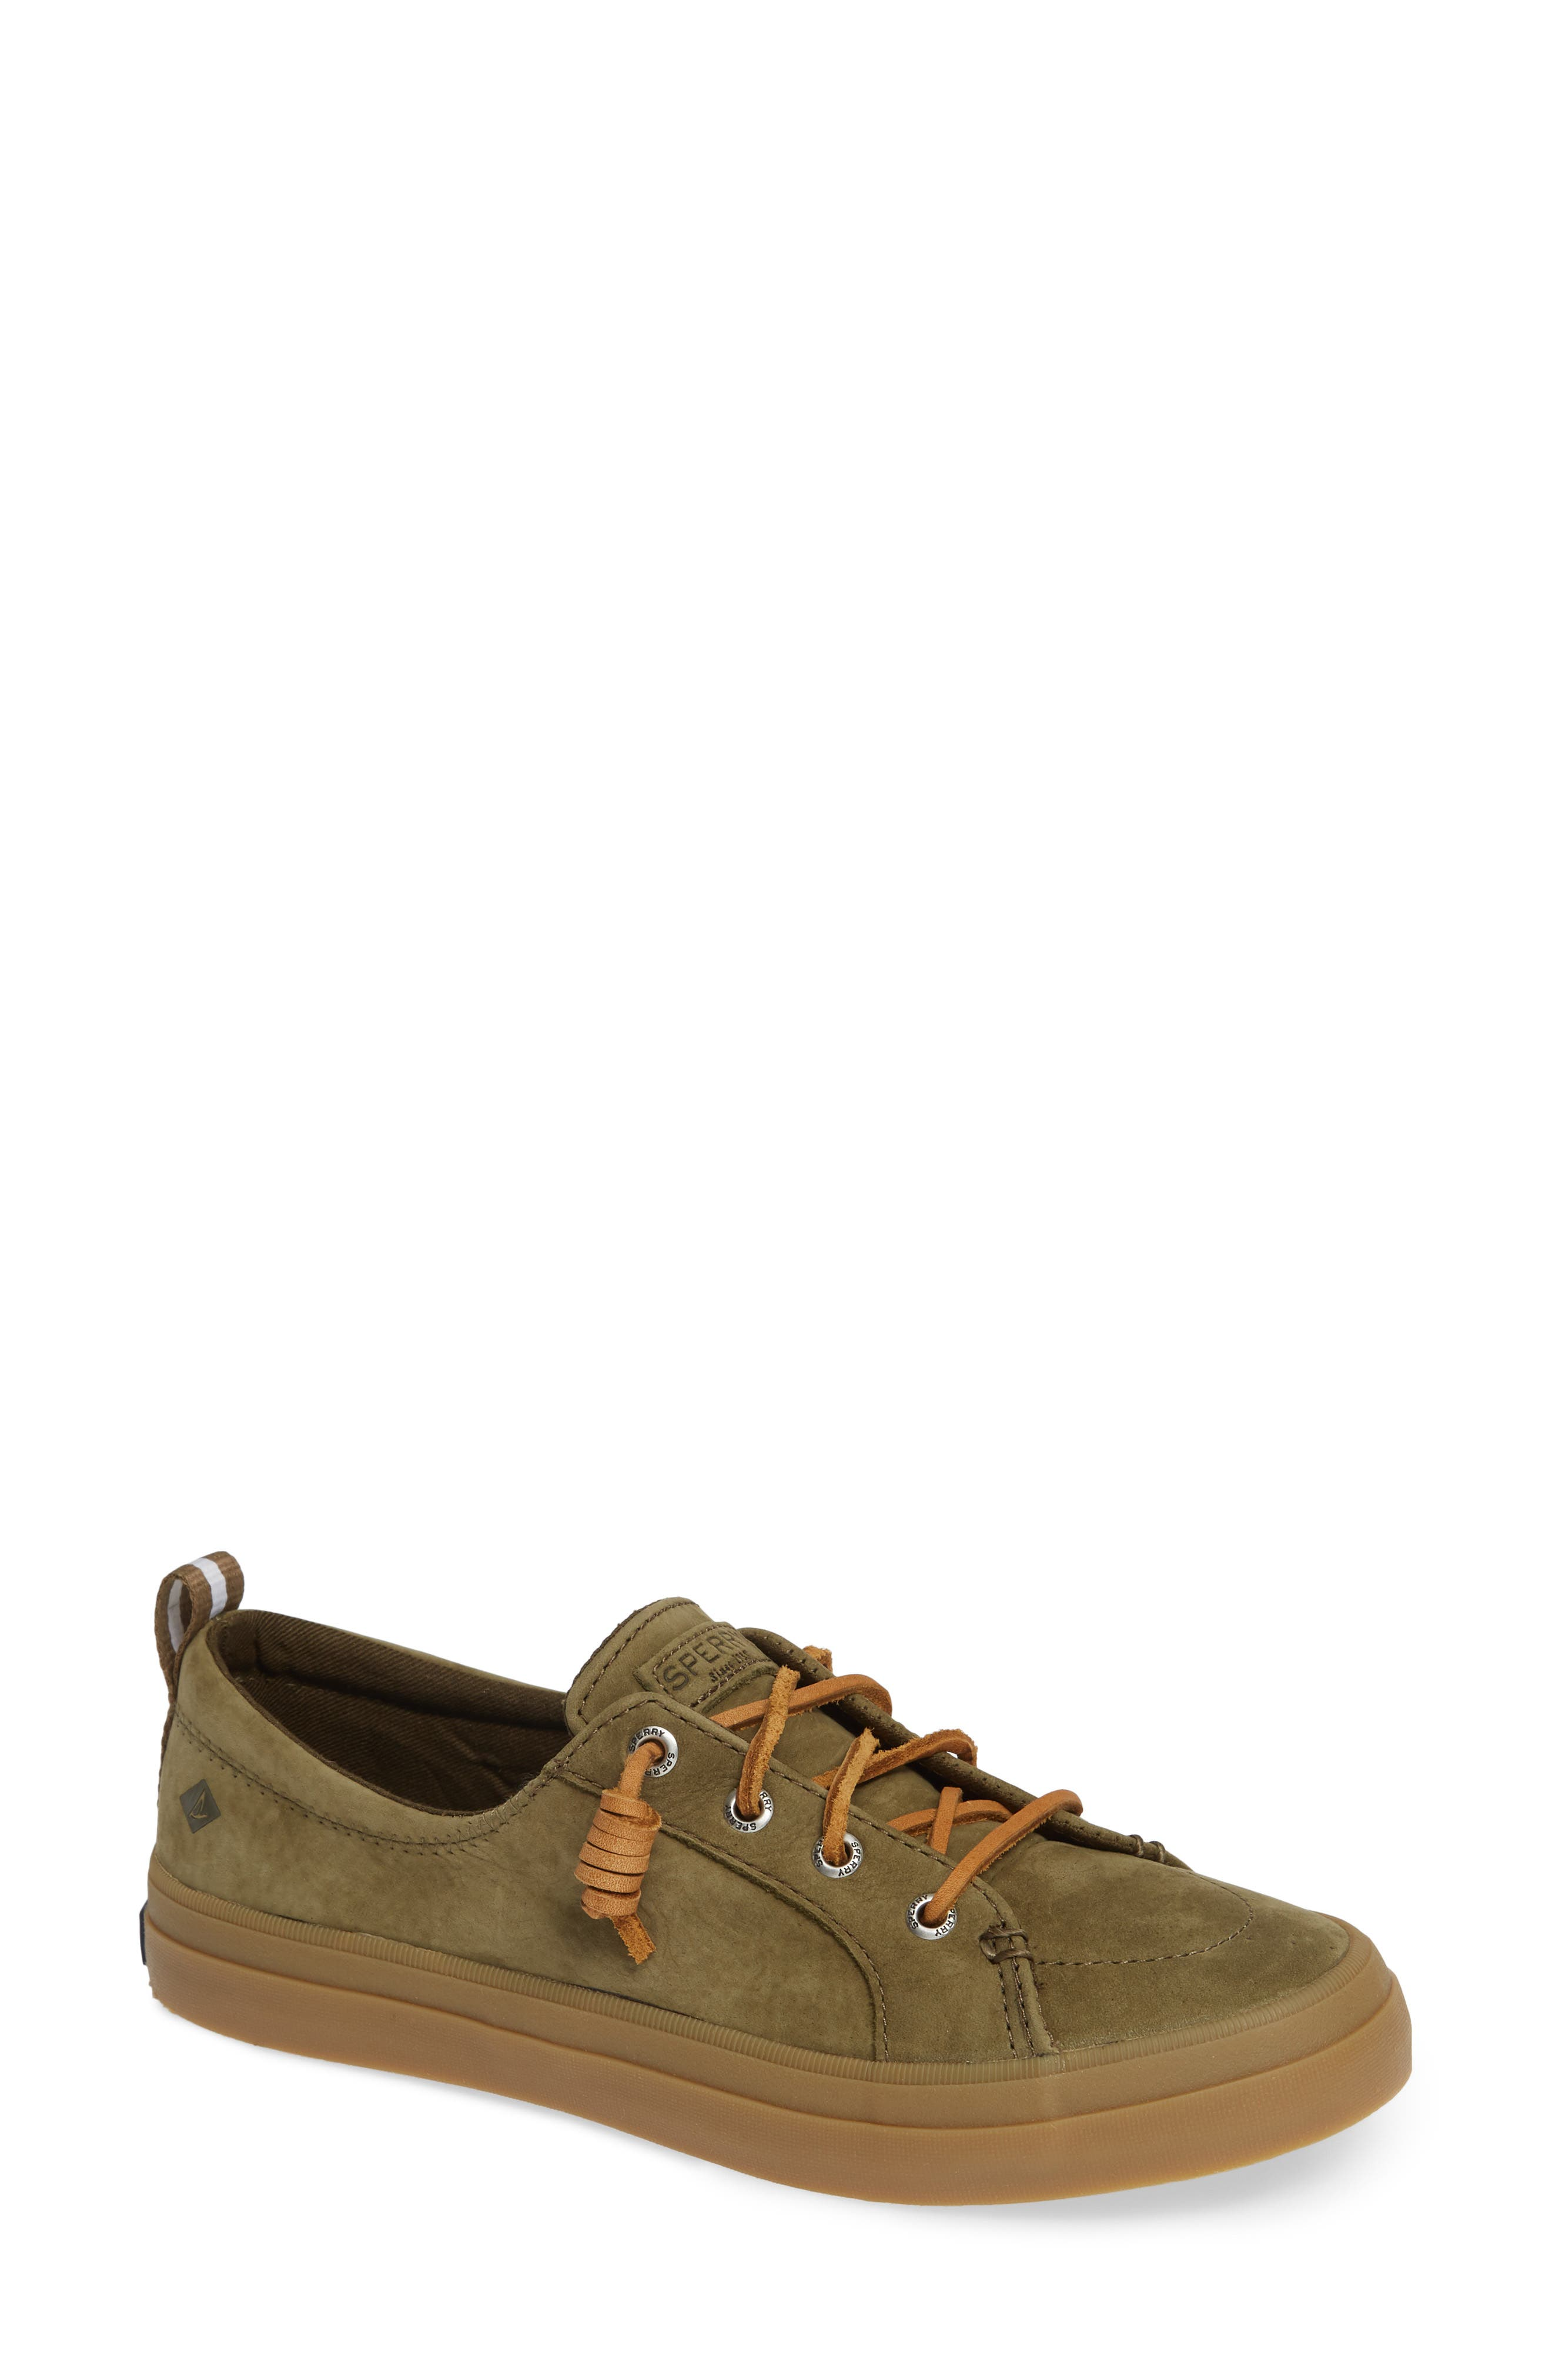 Crest Vibe Sneaker,                         Main,                         color, OLIVE LEATHER